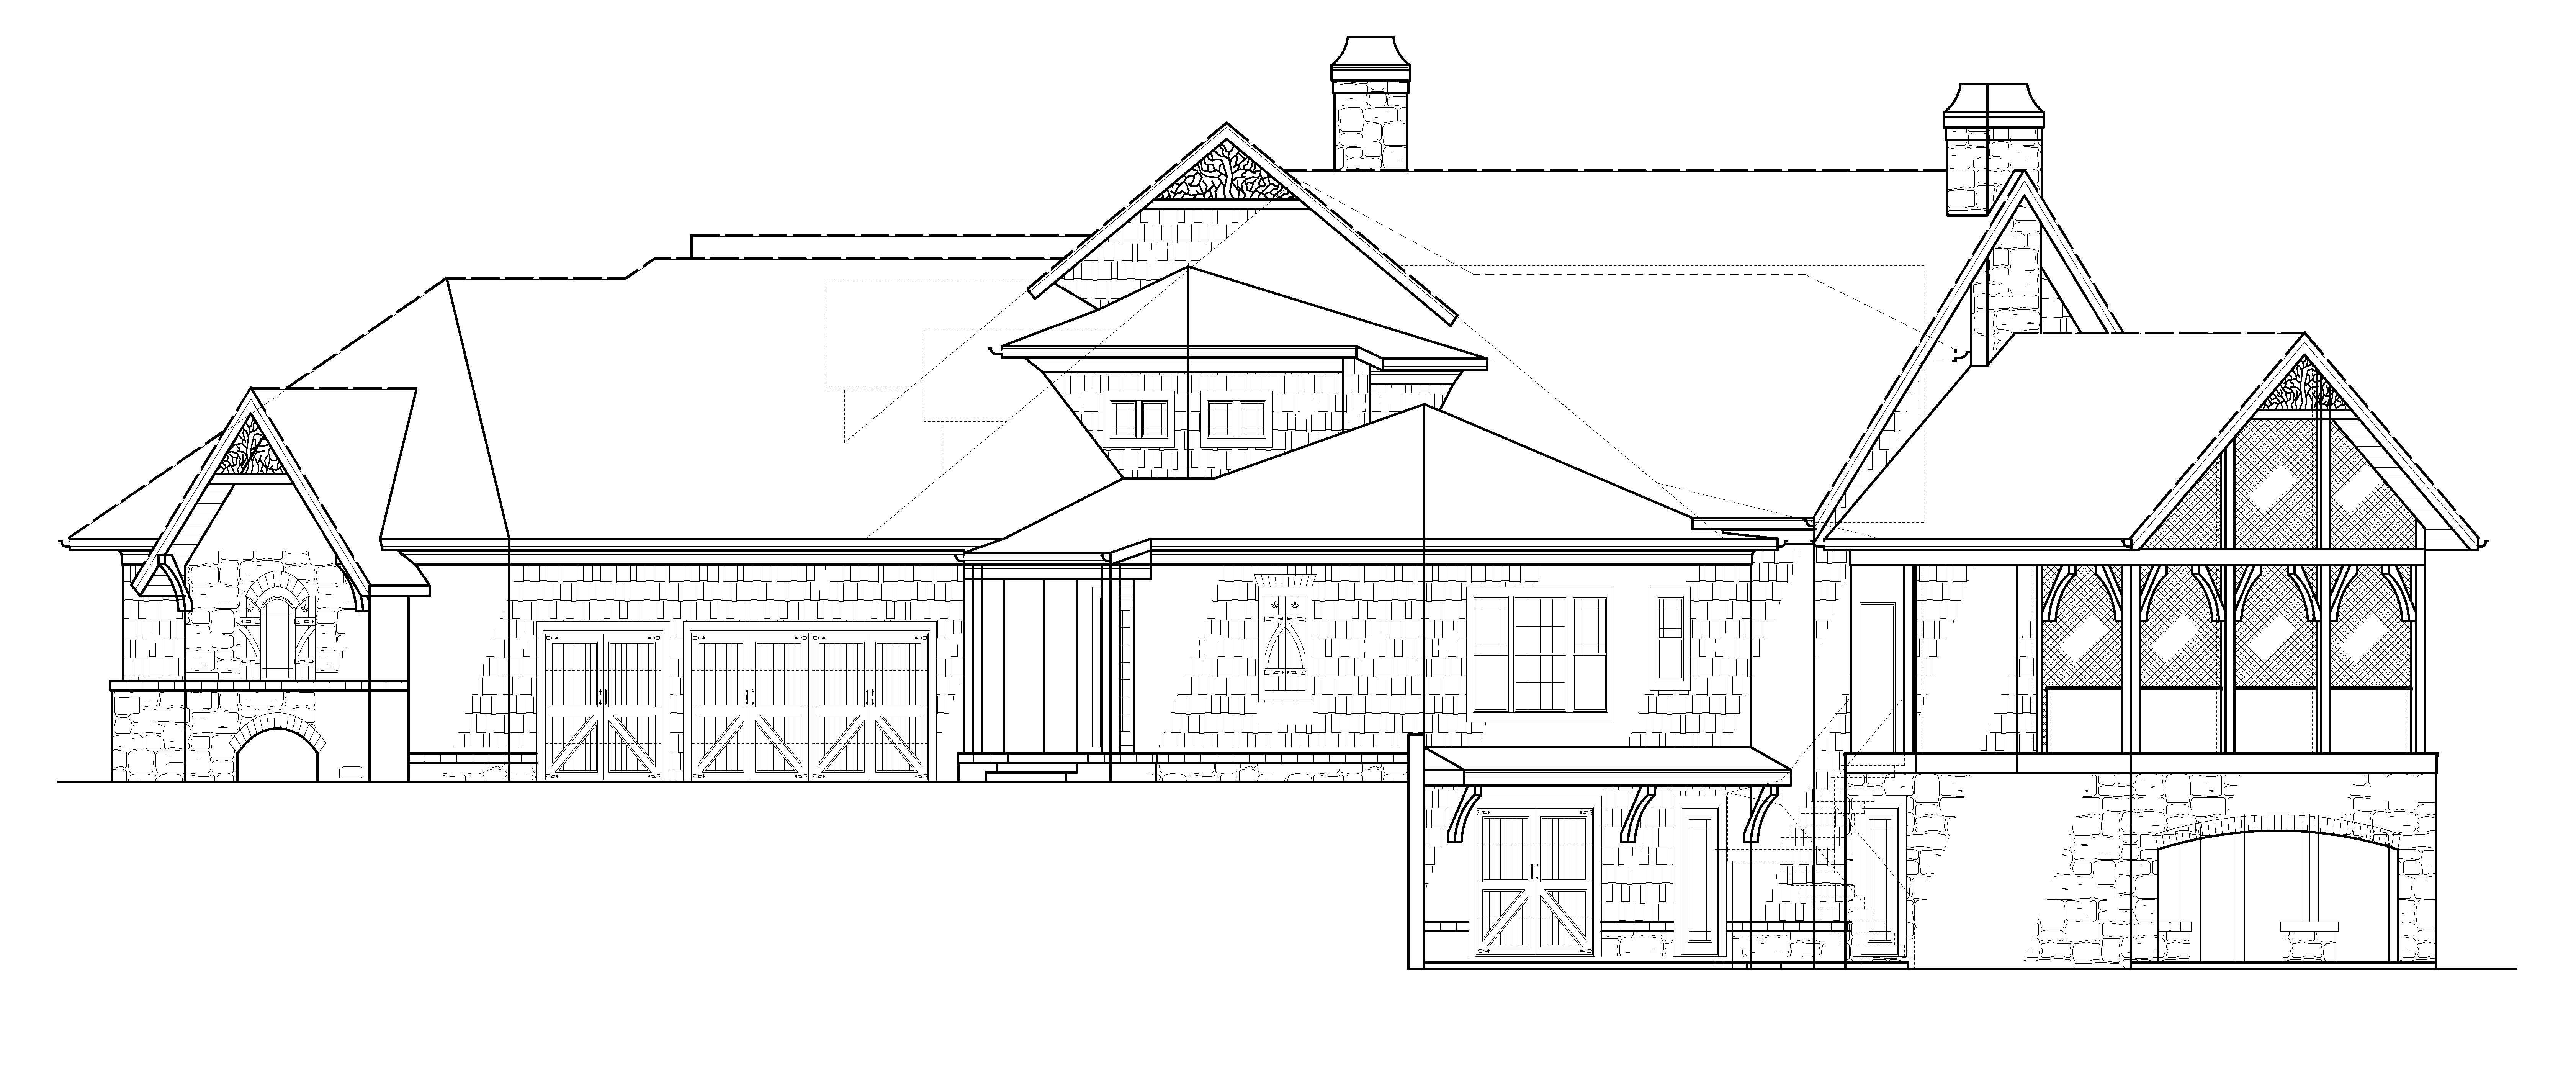 Kettle Lodge House Plans Home Archival Designs